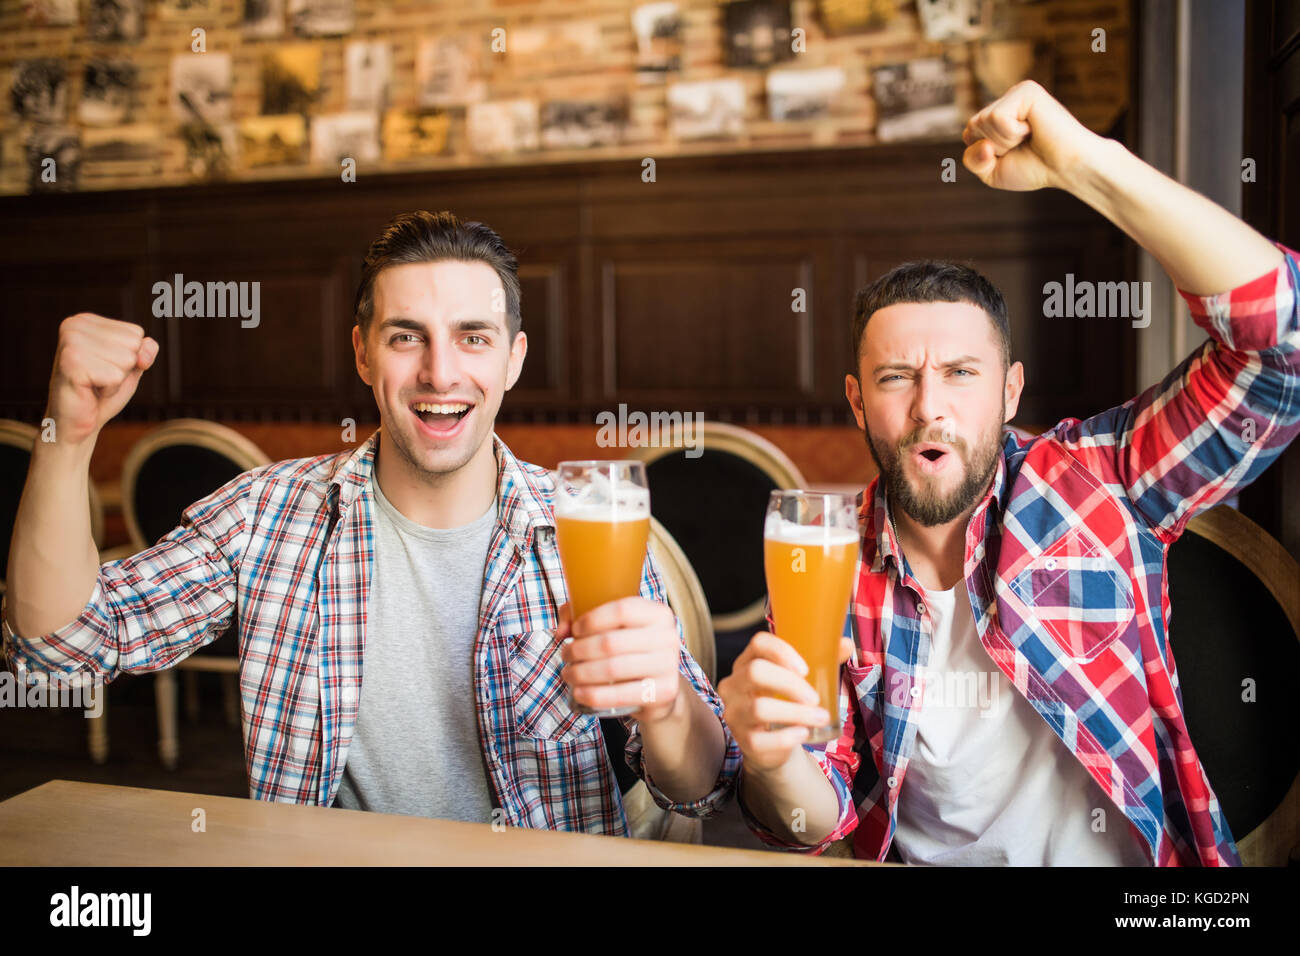 Cheerful male friends having fun at the beer pub celebrating victory of their favorite team watching game on TV - Stock Image